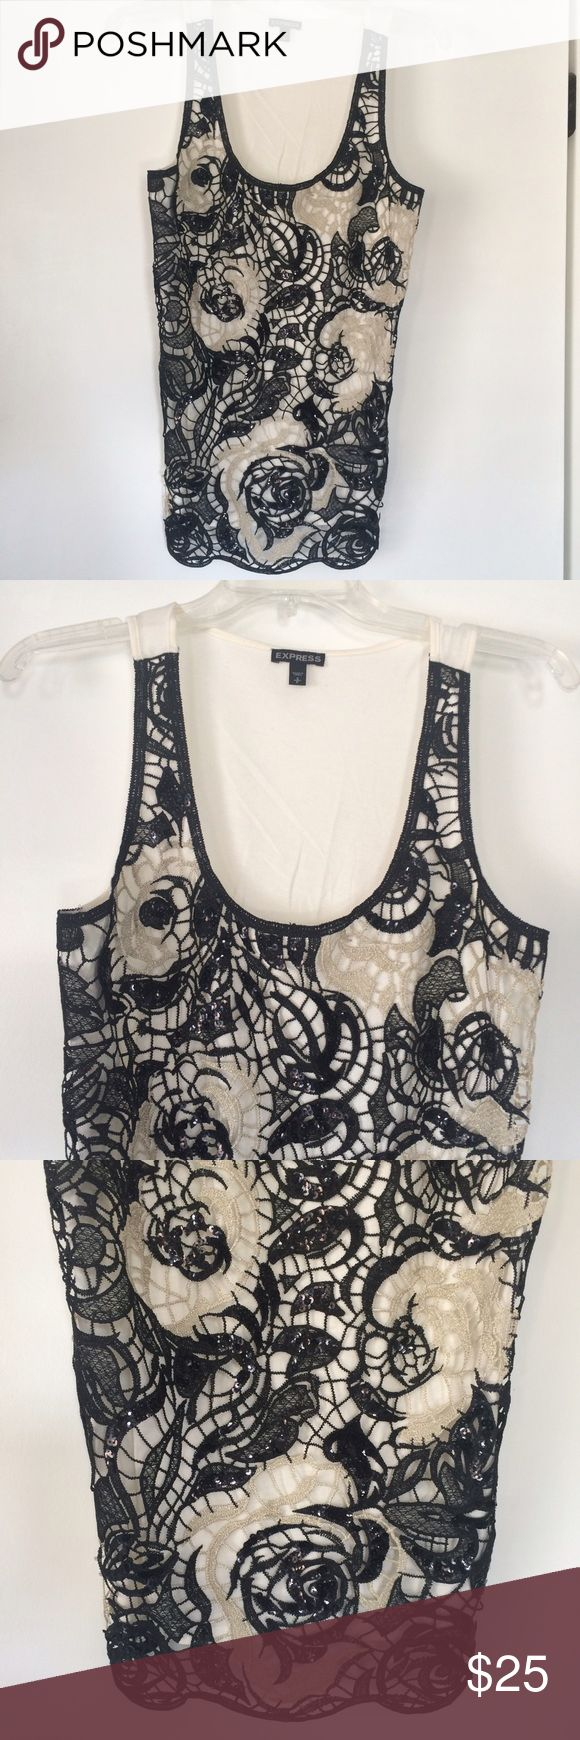 Express Floral Crochet Sequin Tank This tank is so pretty! Only worn a few times so still in excellent condition. The knit/sequin detail is stunning and the white/black rose theme lends a classic, Chanel-sequel touch. You will love it! Sz Small but could fit a S/M. Listing both sizes because it runs in between but the only shirt for sale is listed as a Small. Express Tops Tank Tops